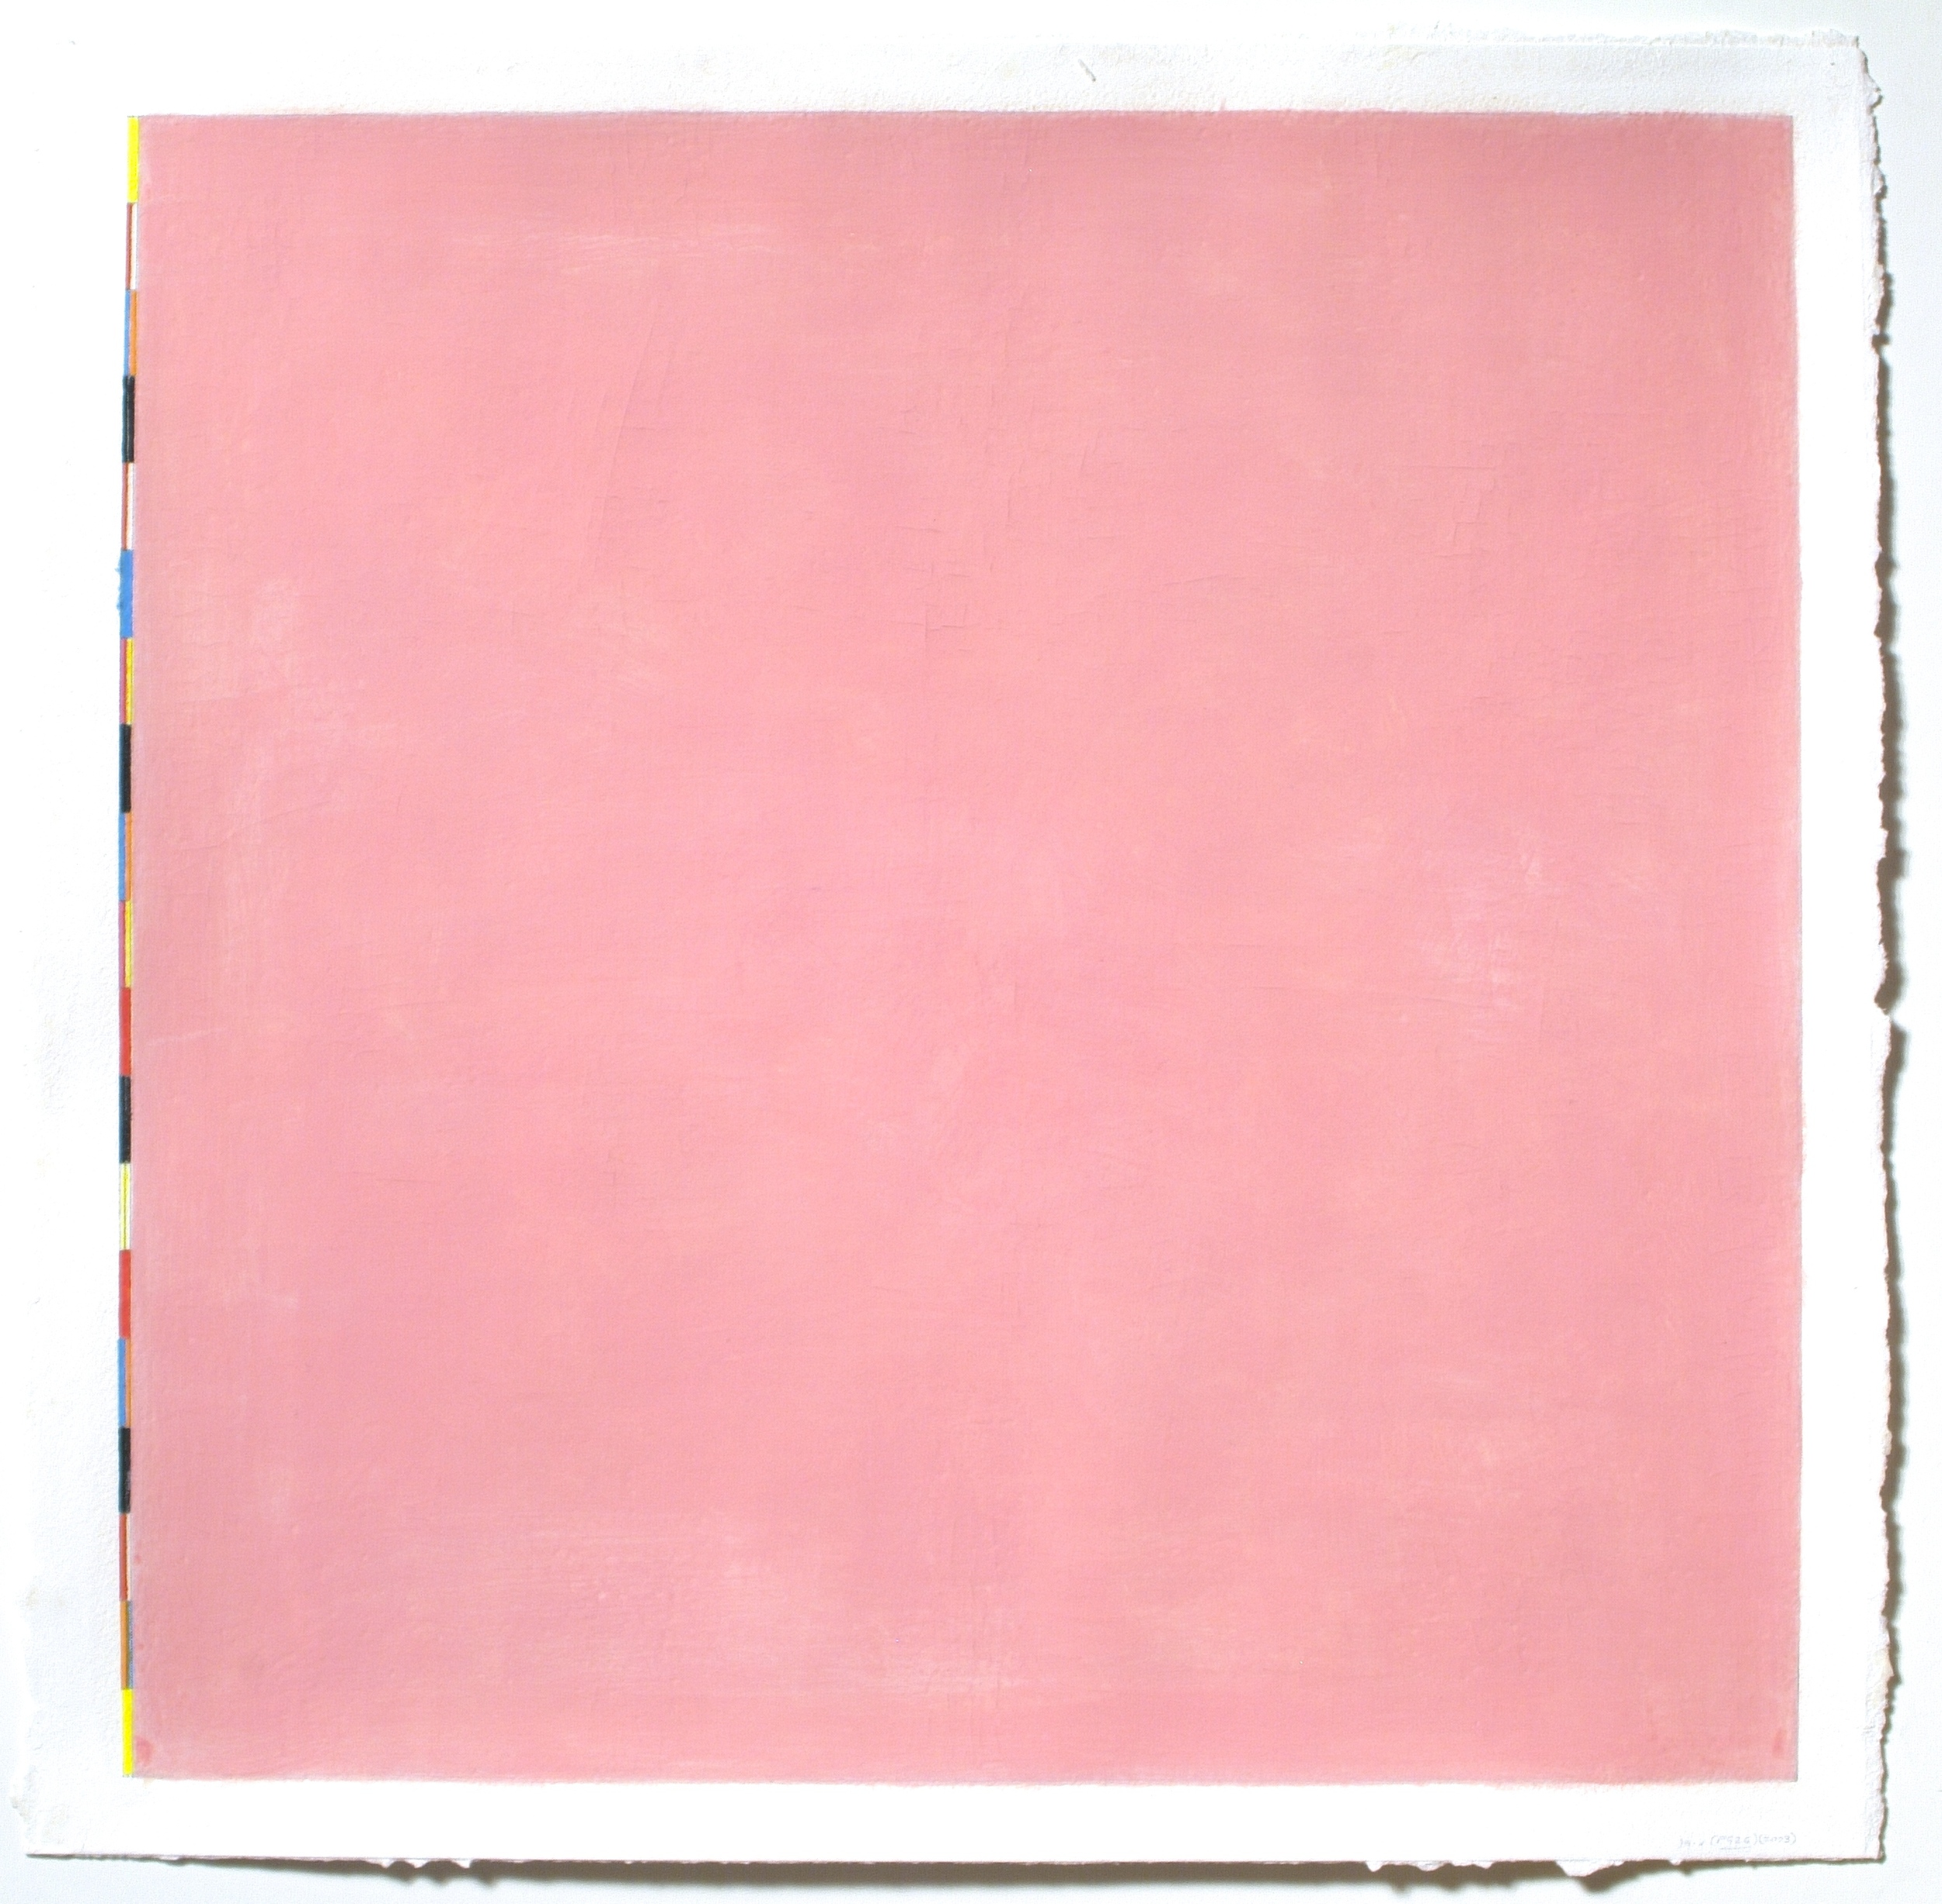 """Untitled (PG26), 2002, gouache on paper, 20 3/16""""x20 5/16""""(image), 22 1/8""""x22 5/8"""" (paper)"""